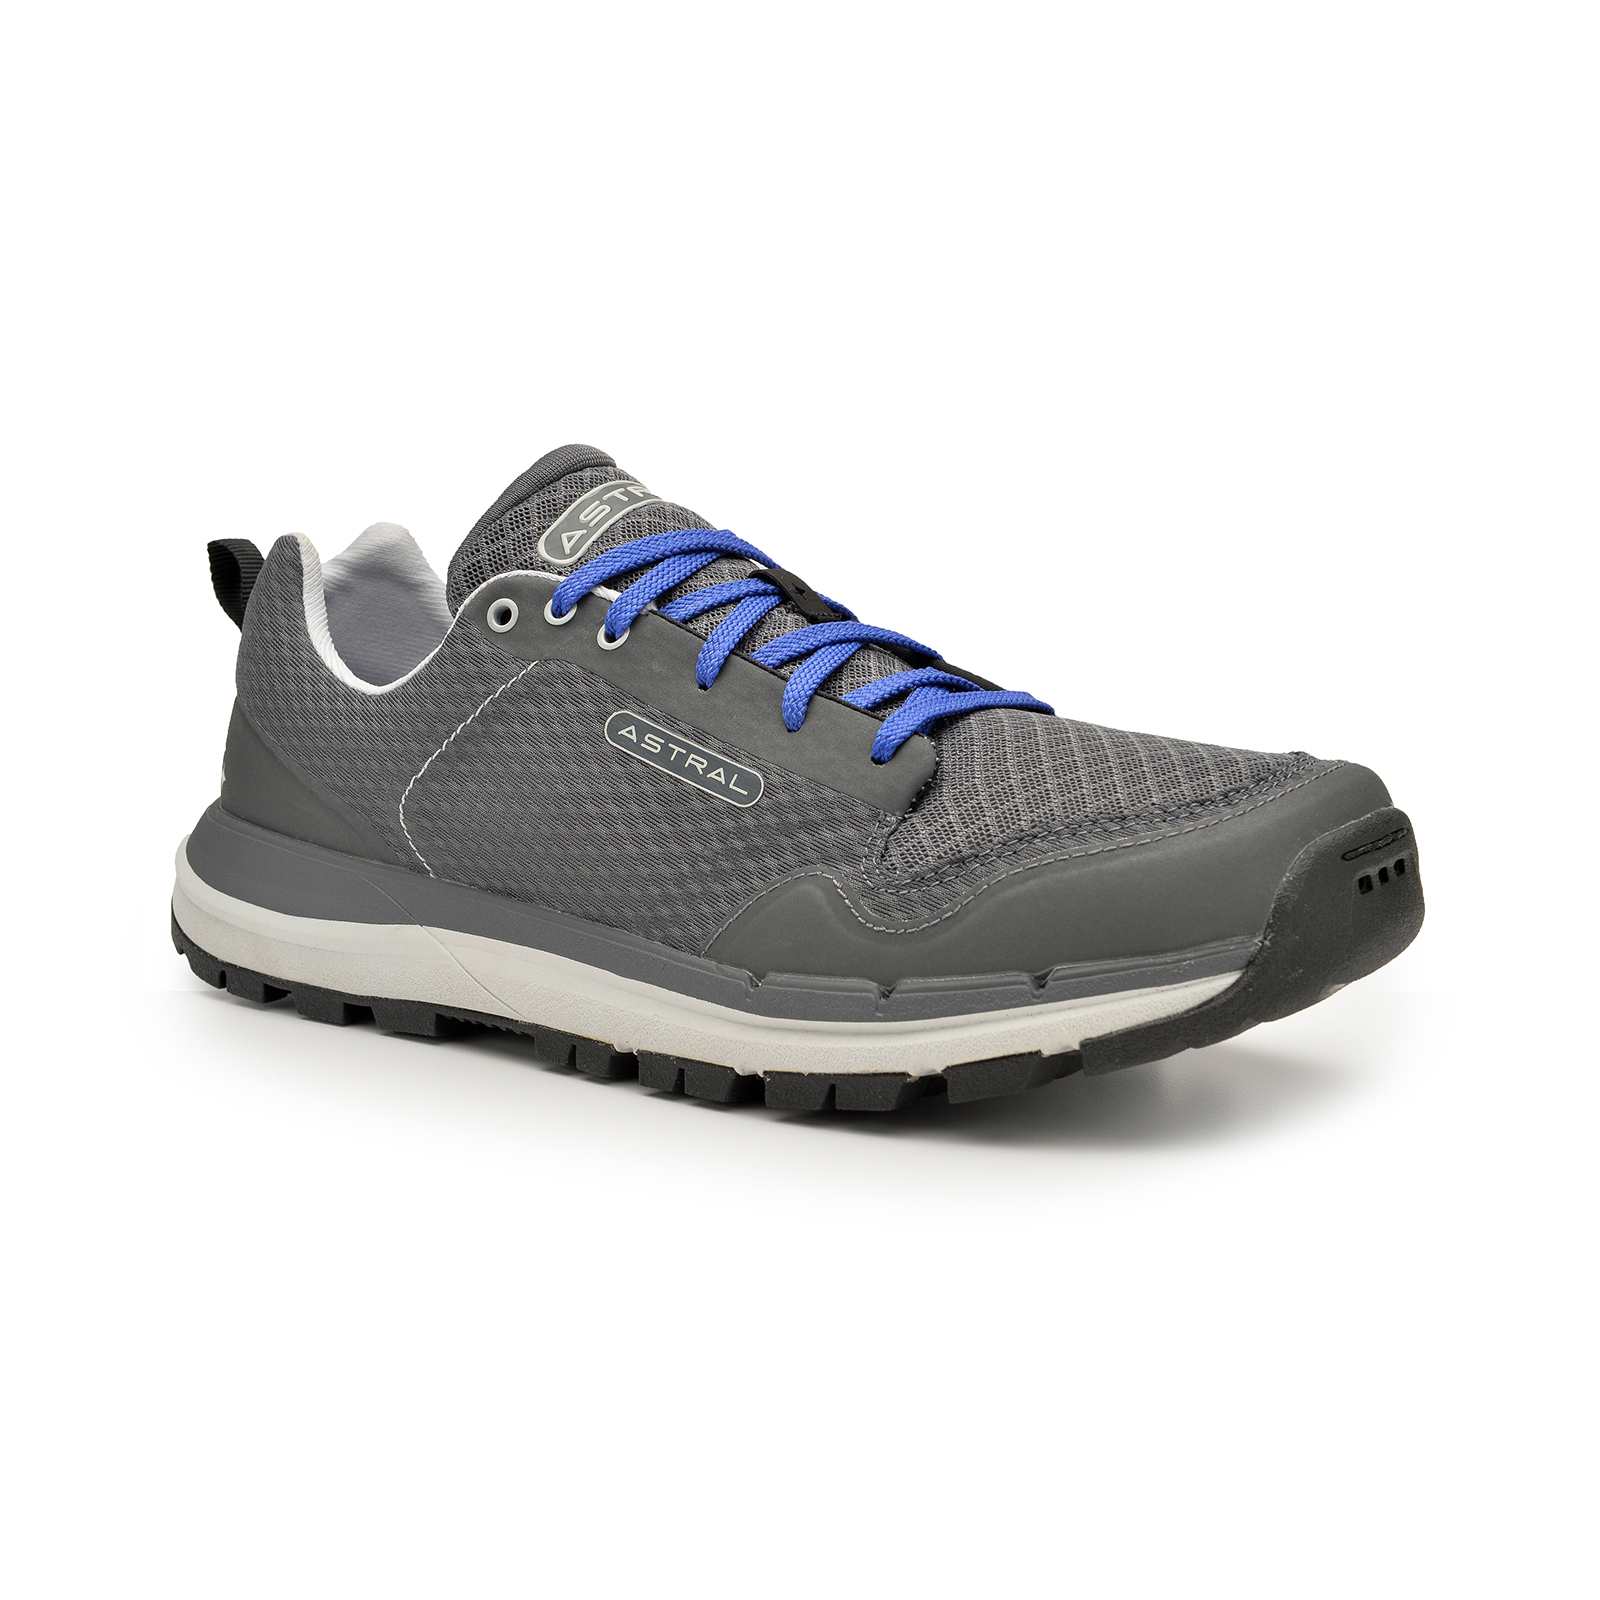 Astral TR1 Mesh Men's Water Shoe (MMCHG)